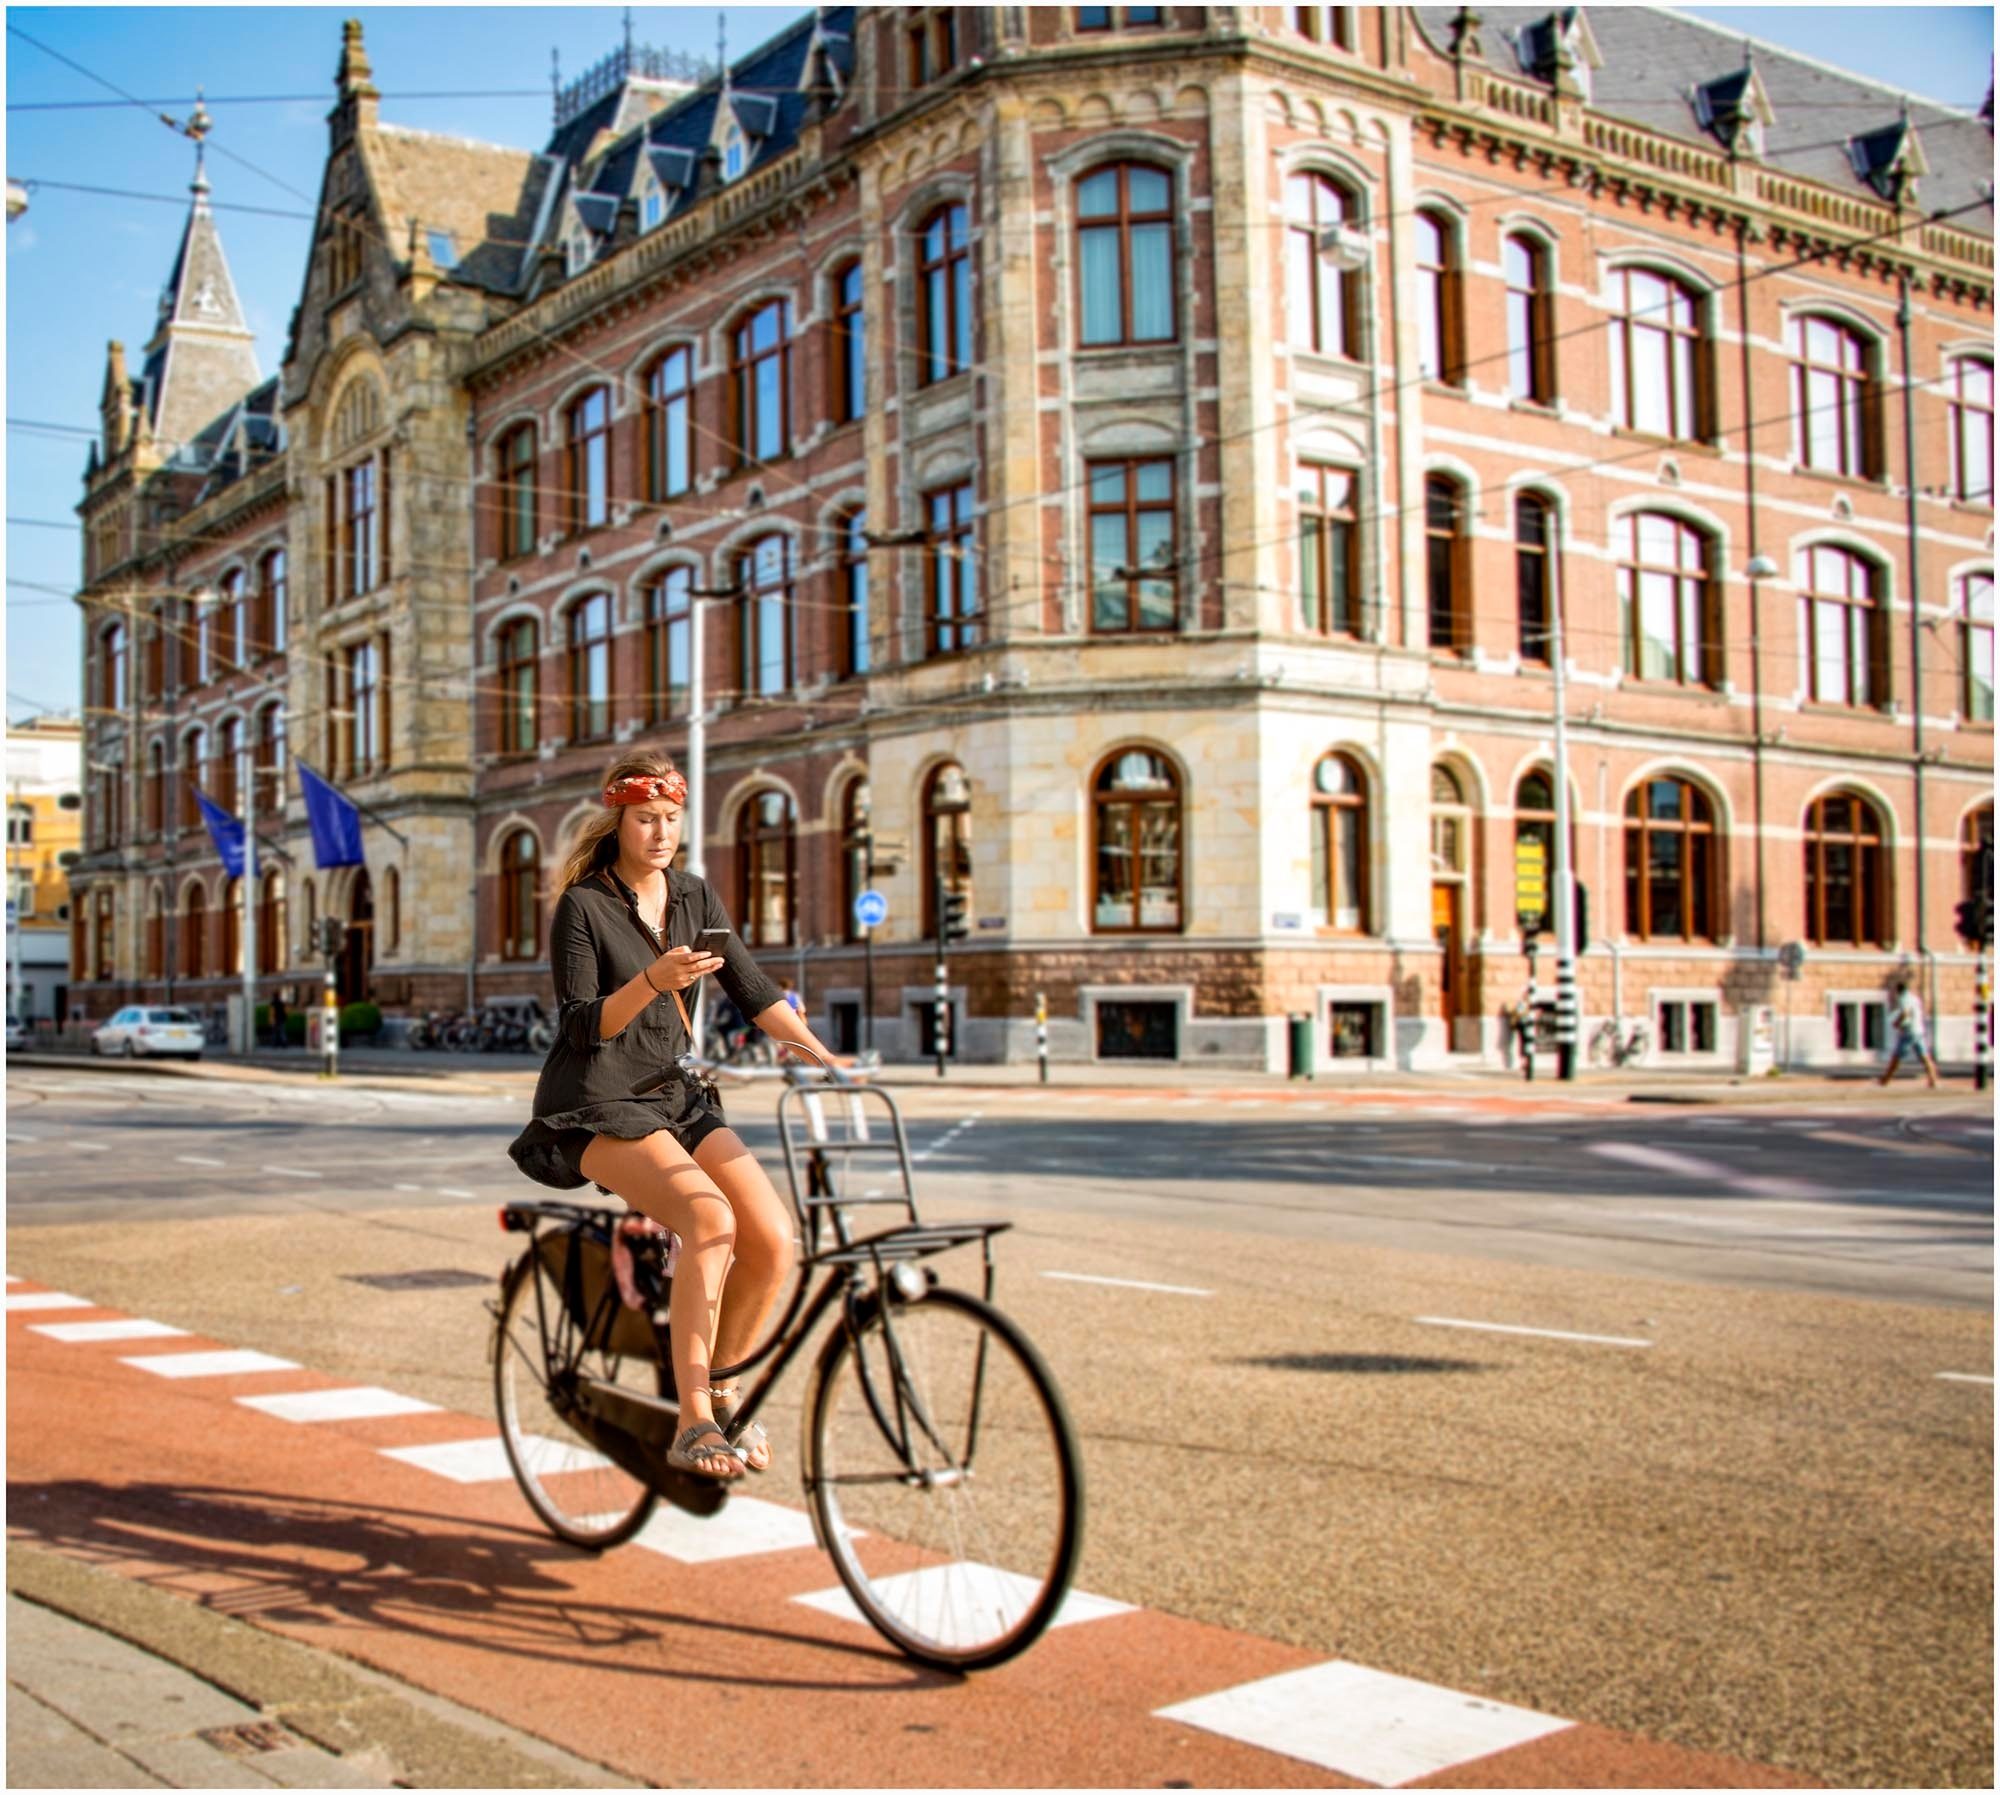 Girl on Bike - Amsterdam by tedurquhart1